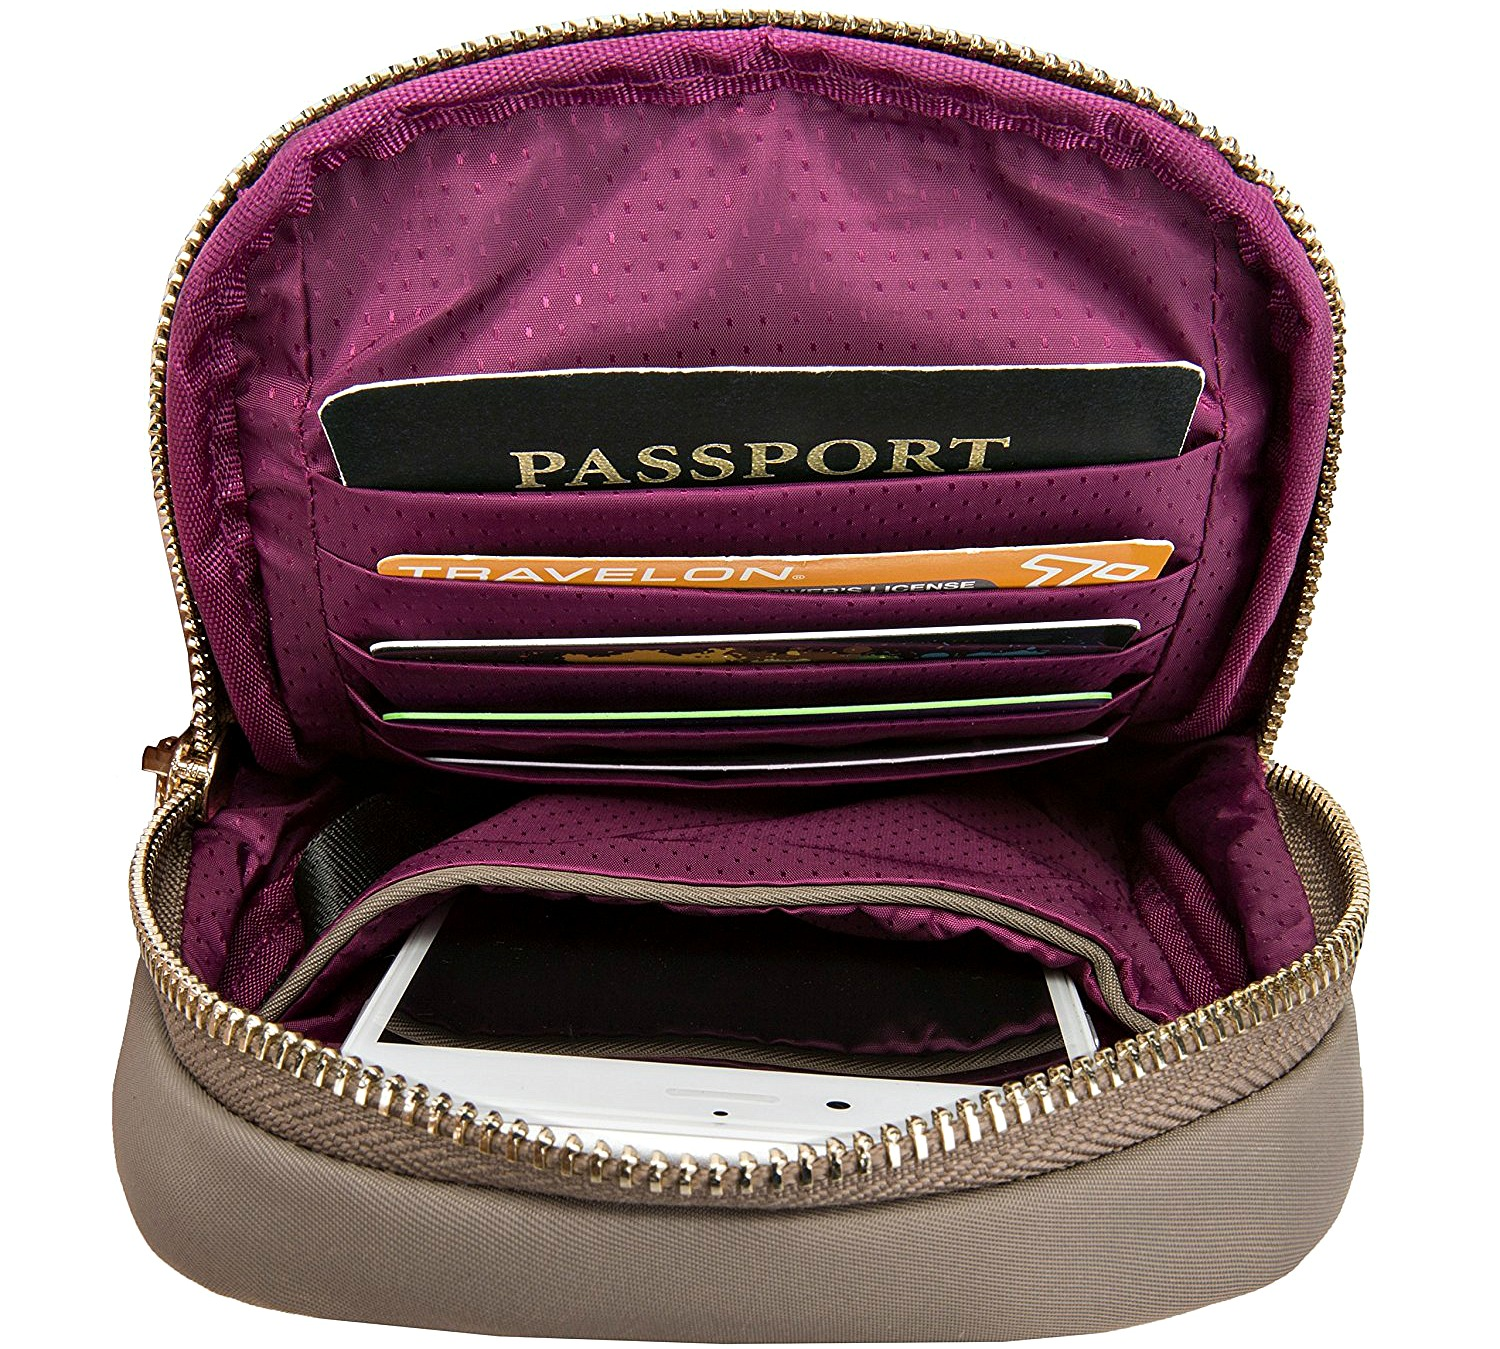 anti-theft-tailored-crossbody-phone-pouch